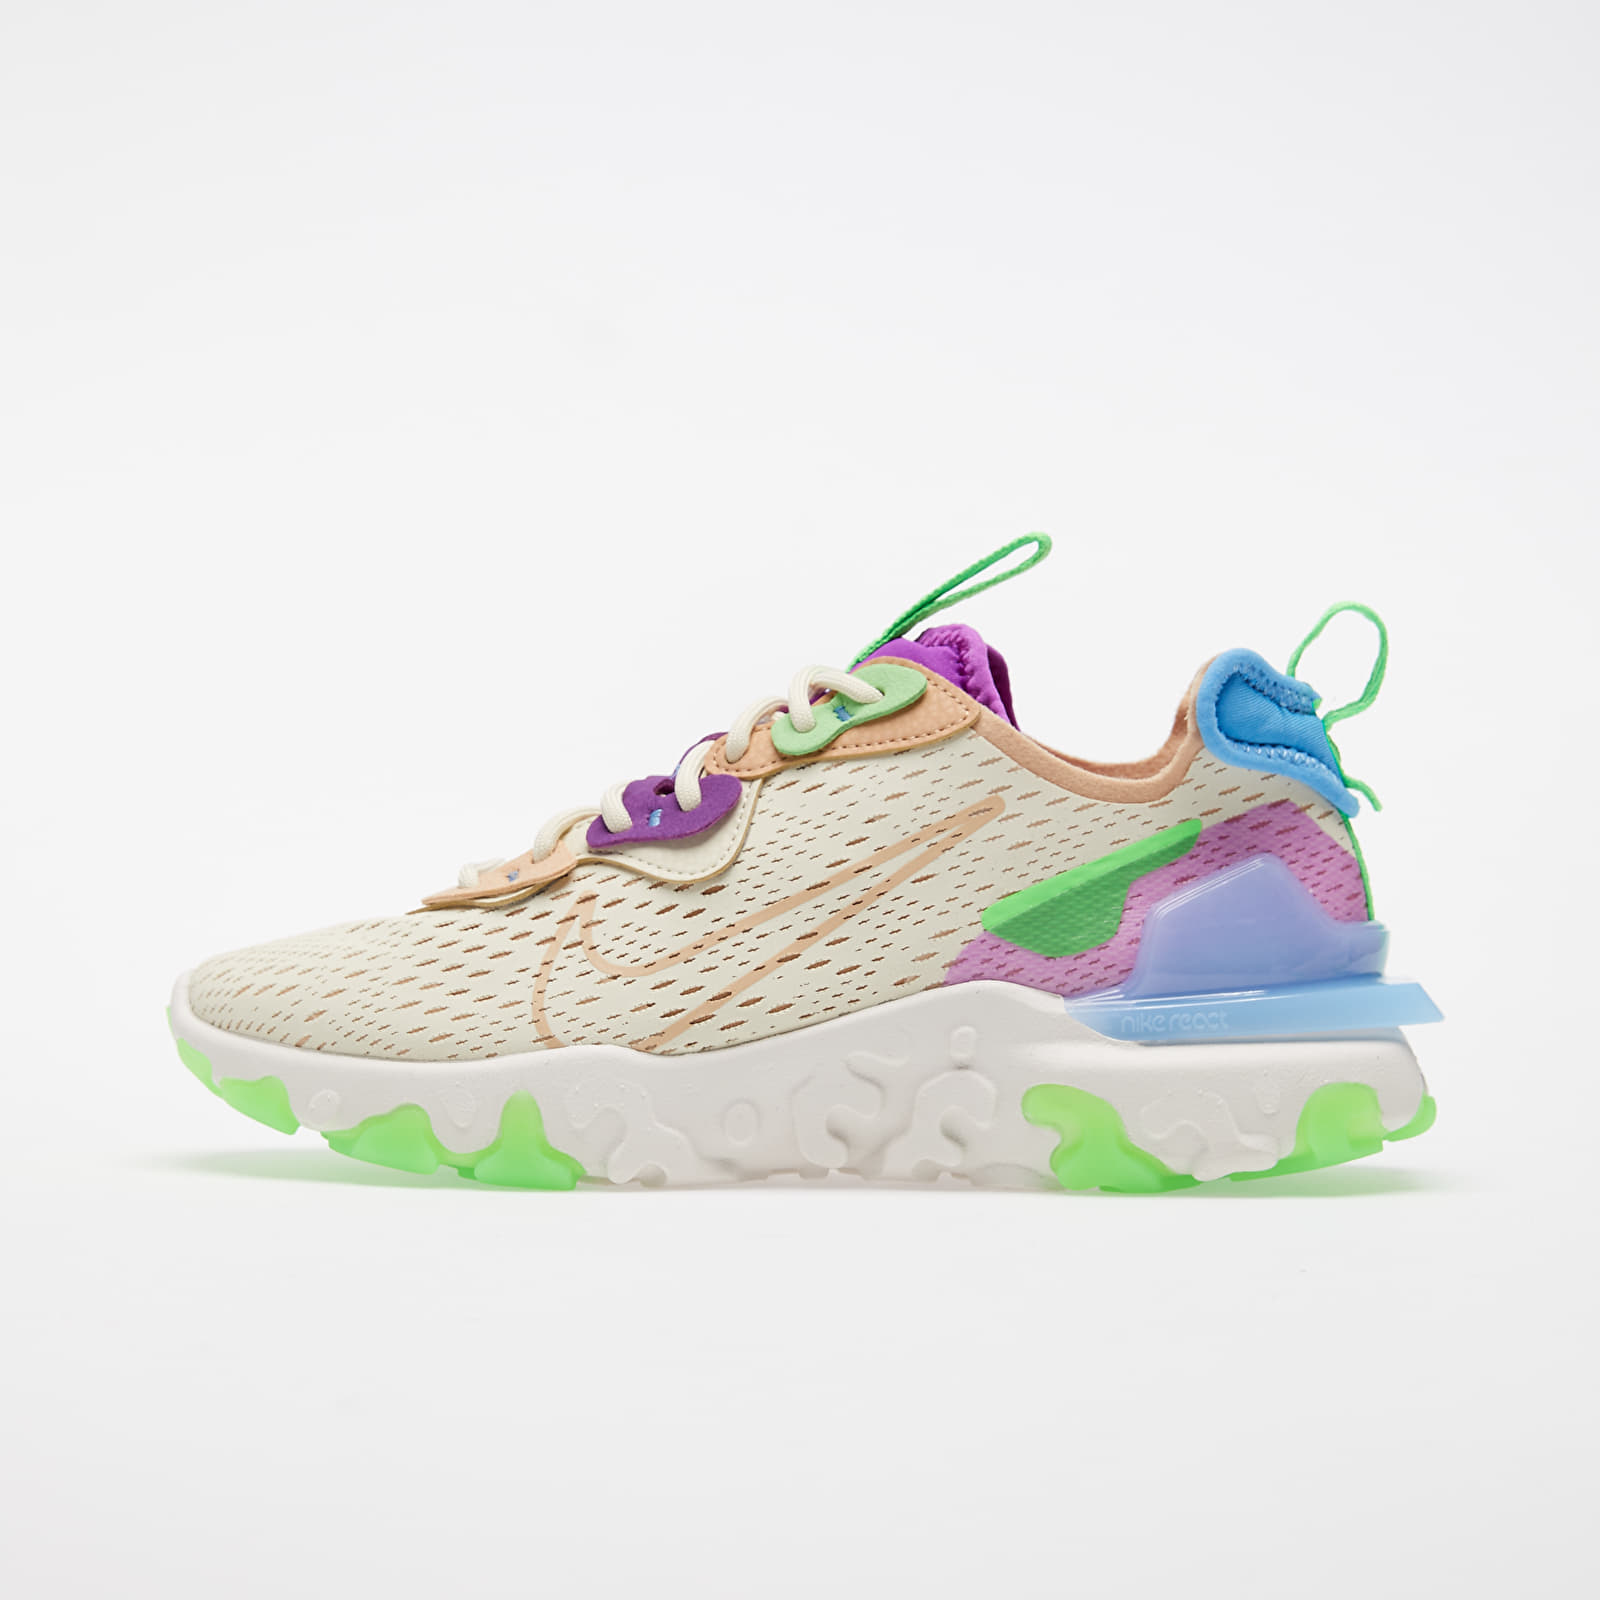 Women's shoes Nike W NSW React Vision Fossil/ Vachetta Tan-Vivid Purple